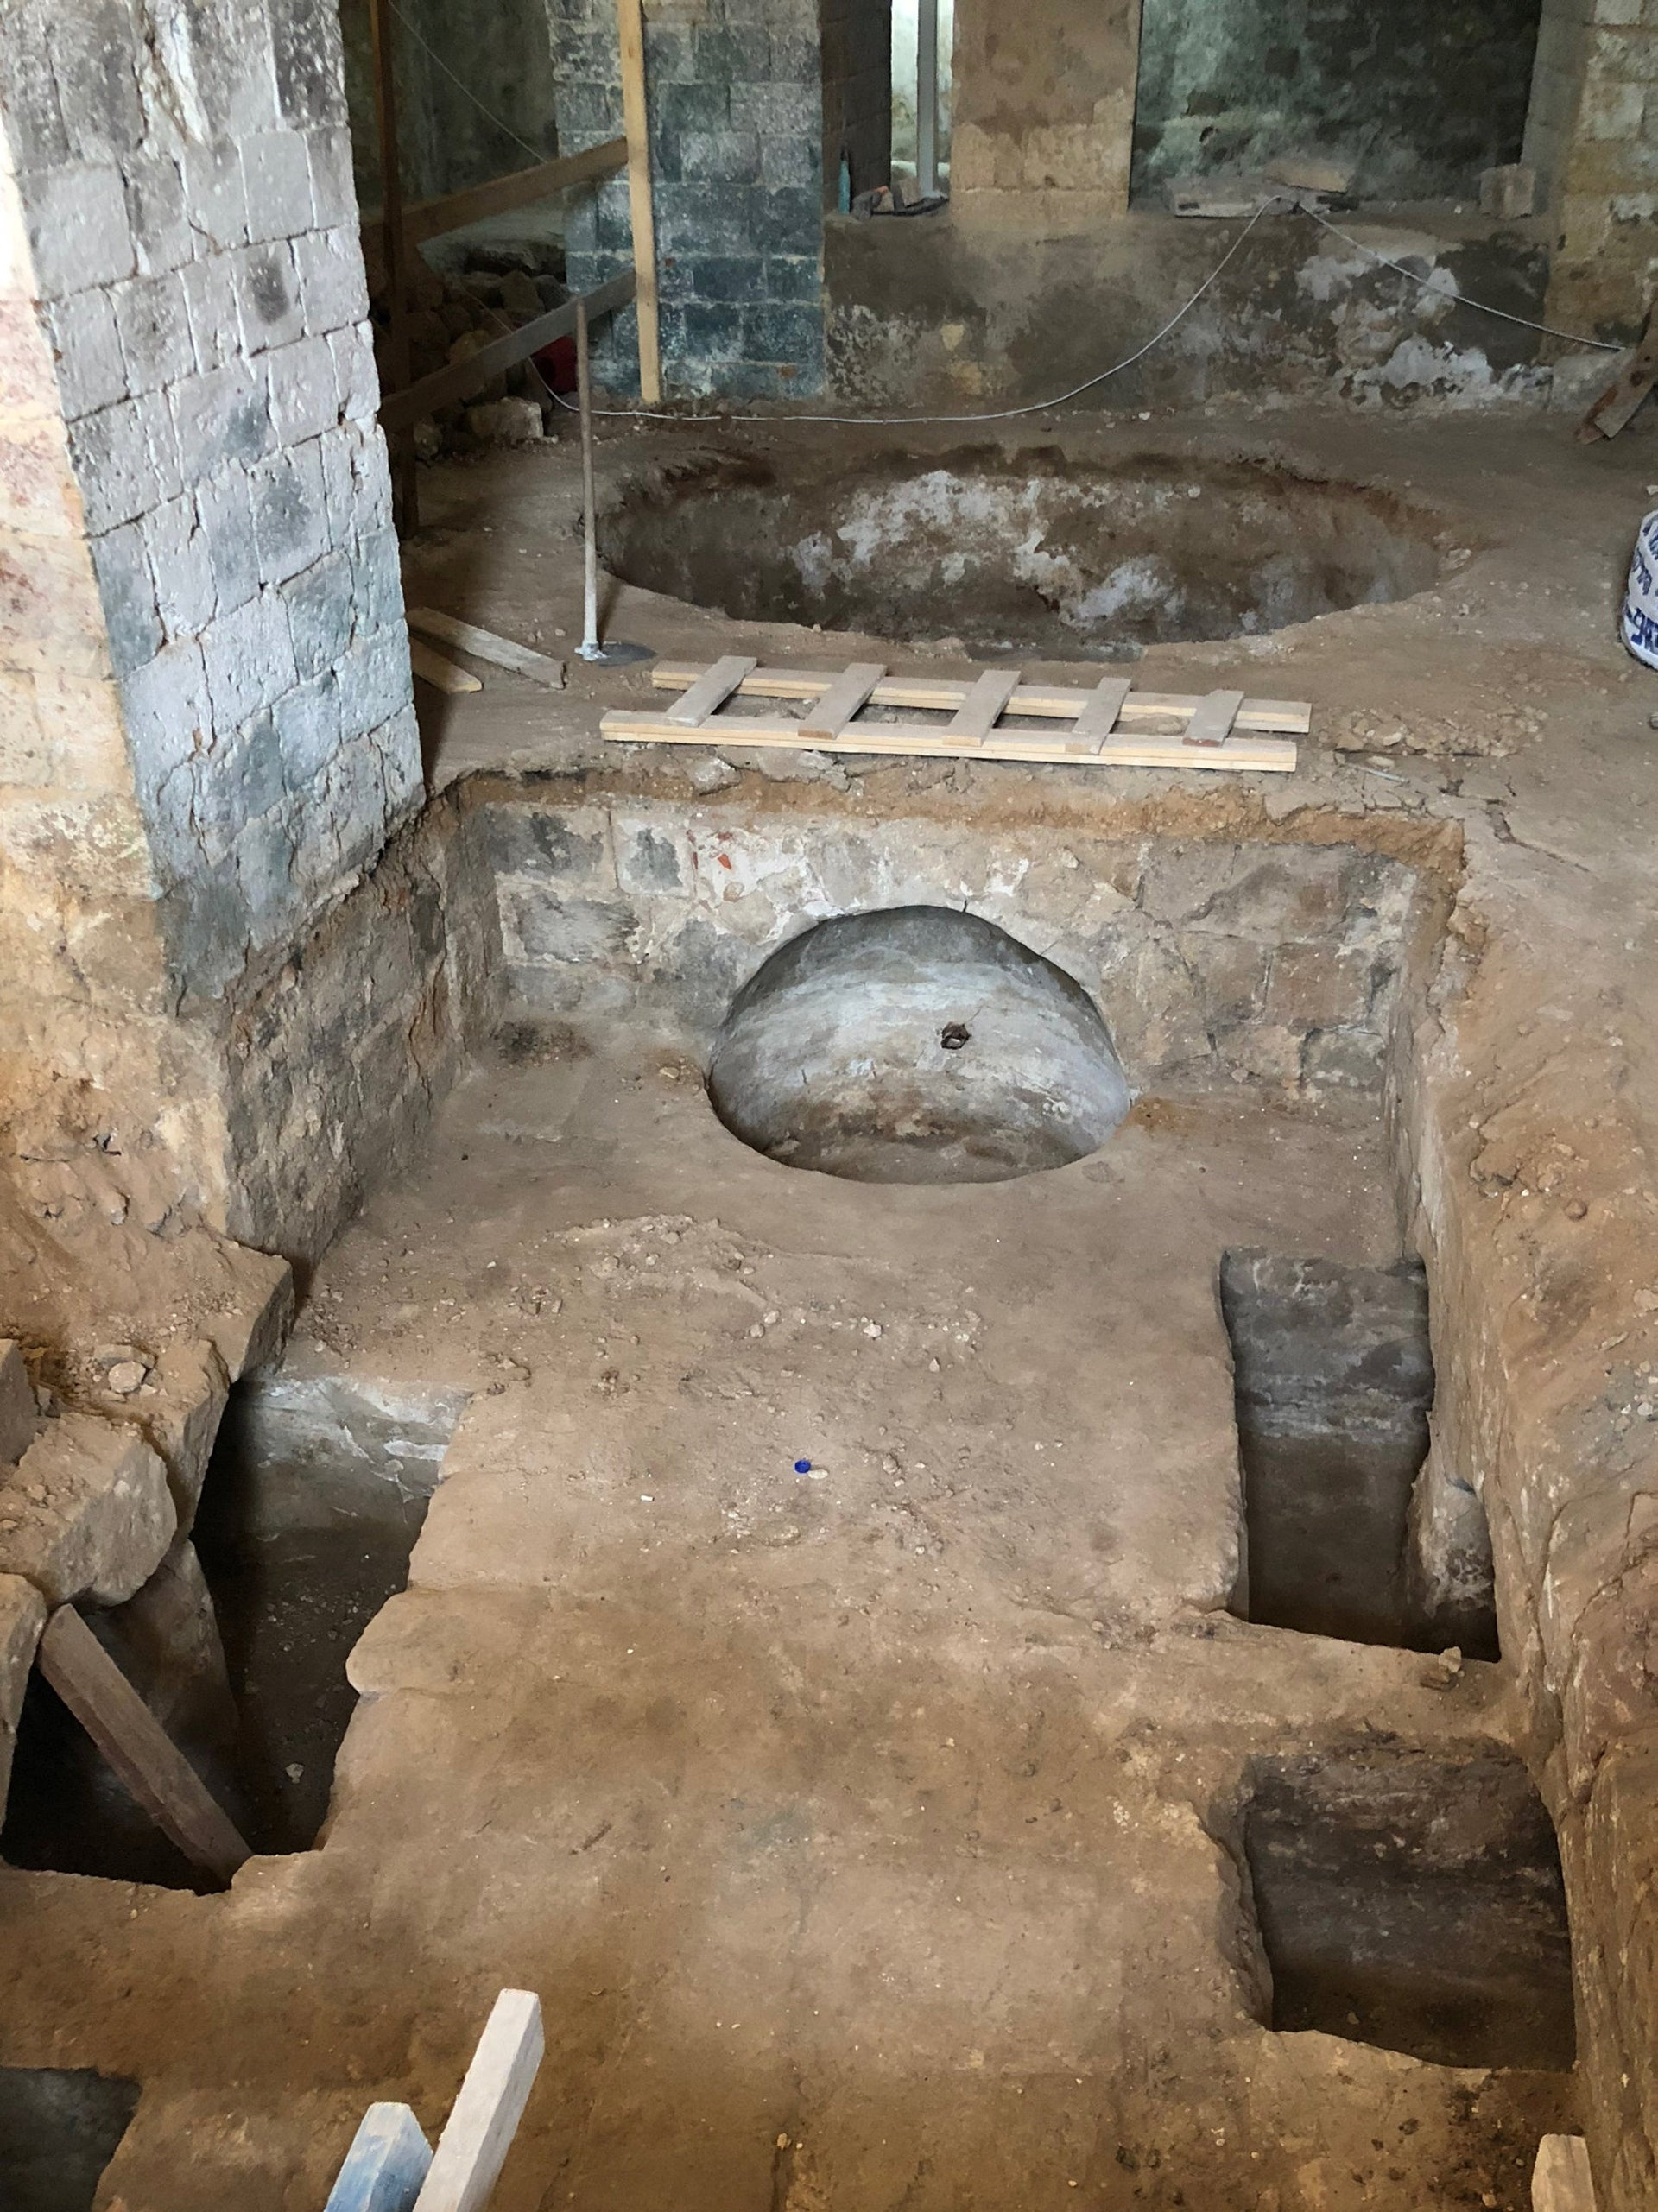 Troughs of the 19th-century Ottoman soap factory found in Jaffa